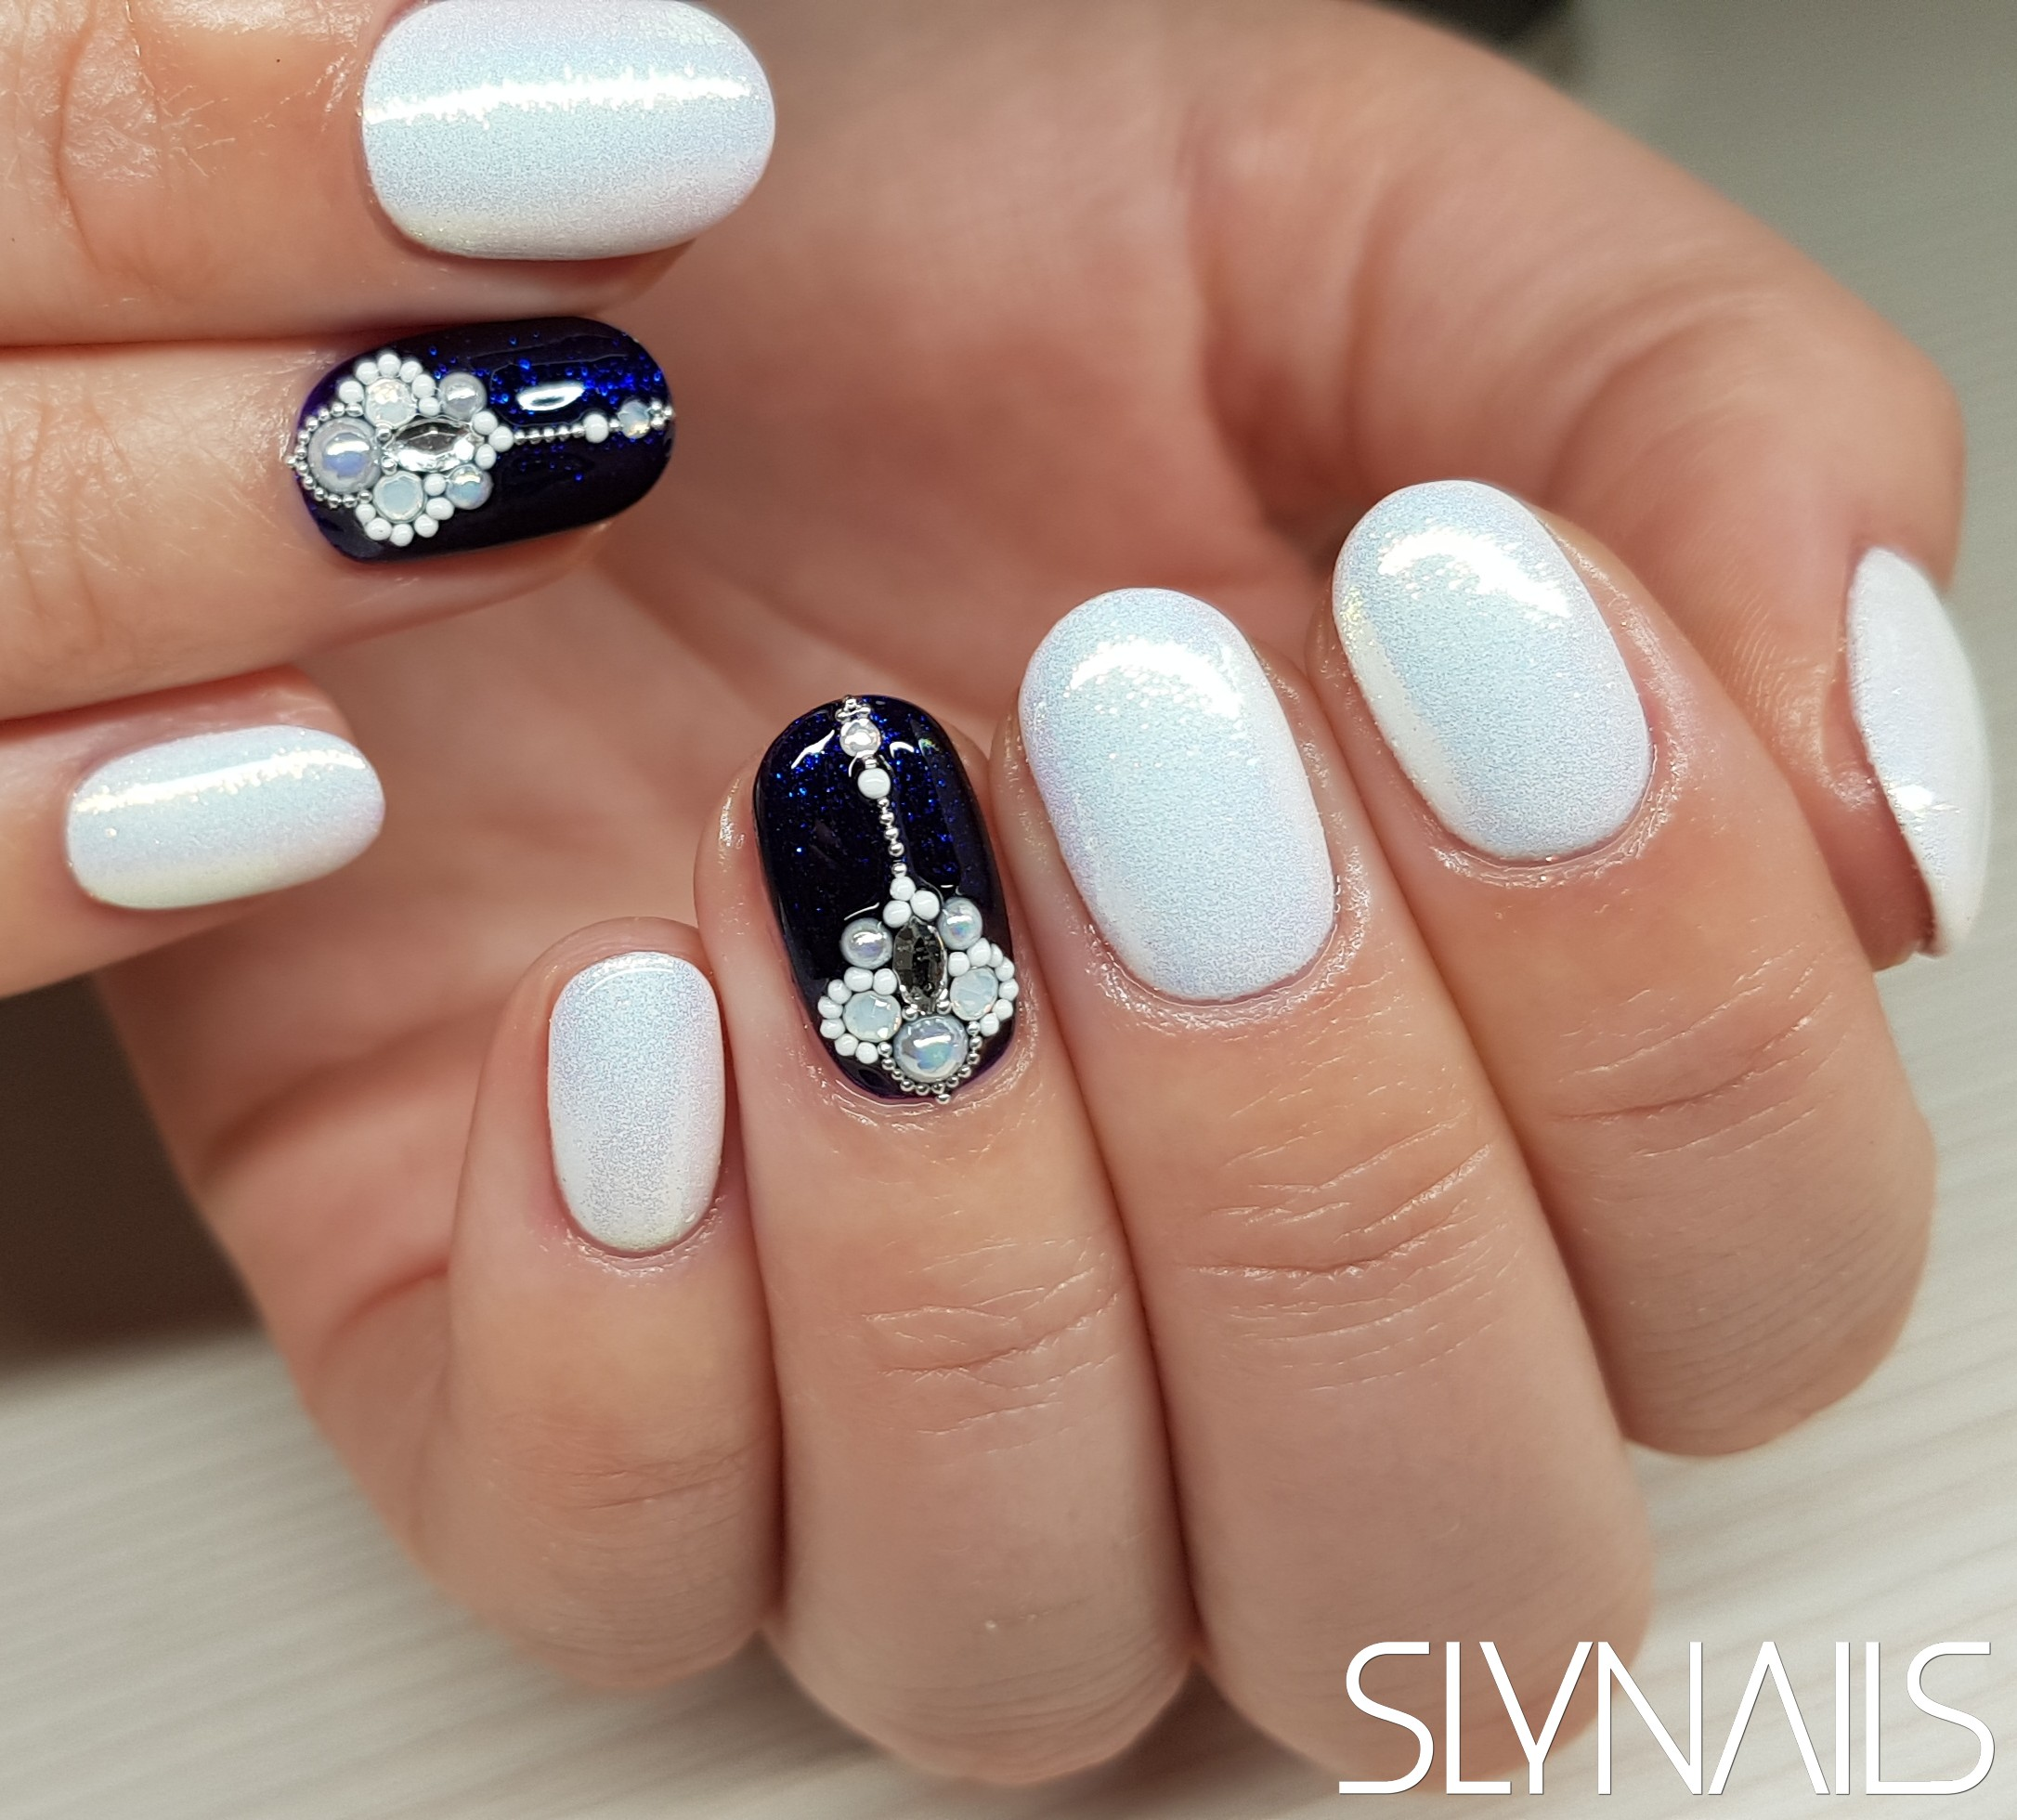 Gel-lac on toes, White, Blue, One color, Rounded, Swarovski, Swarovski shapestrass, Mermaid